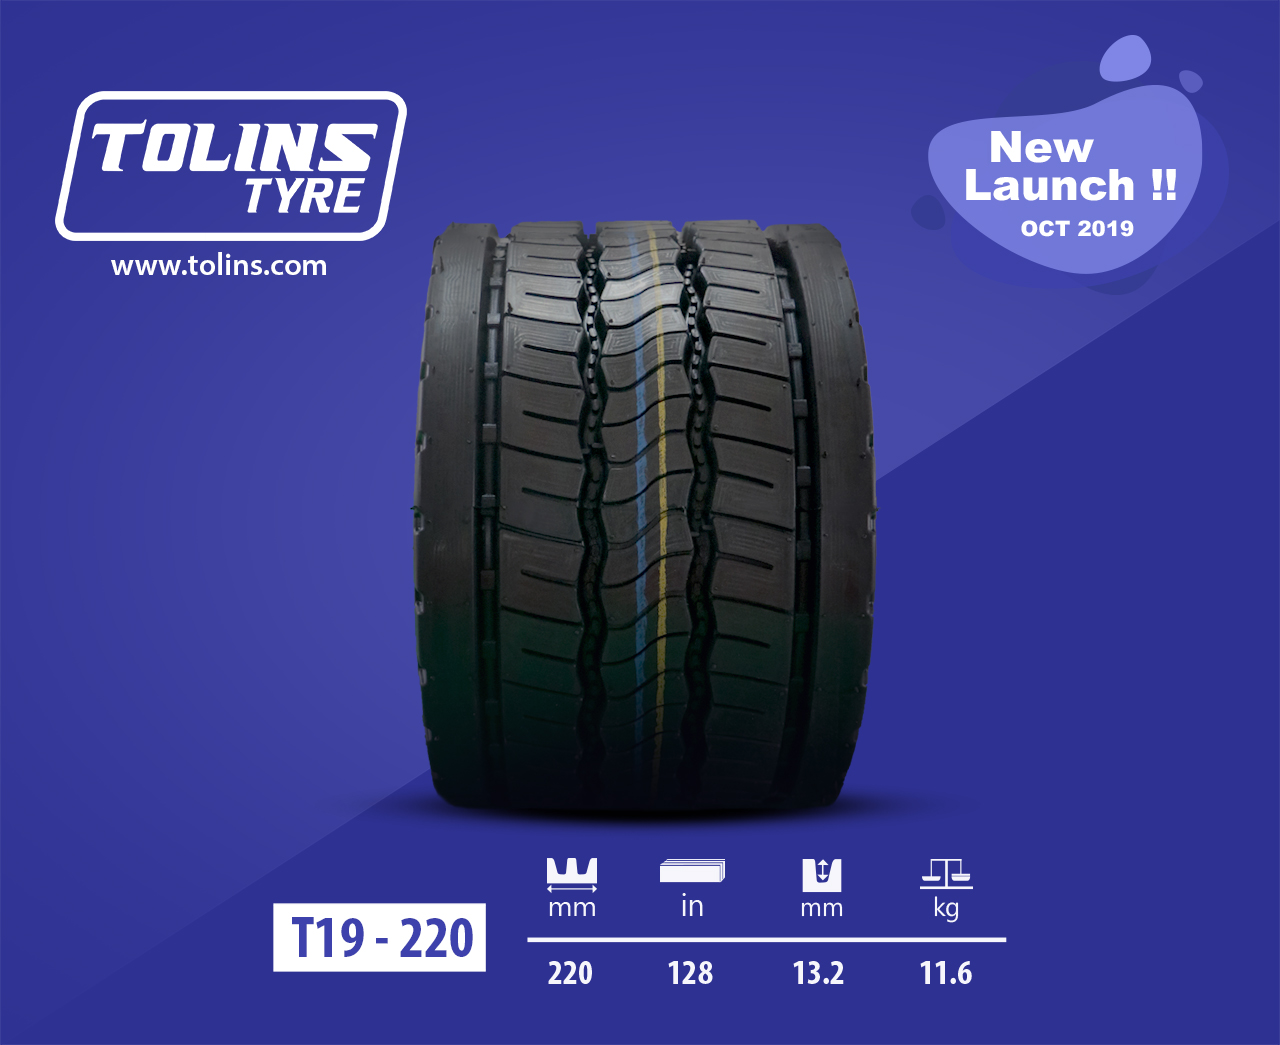 Tolins Precured Tread Rubber T19. Newly Launched!